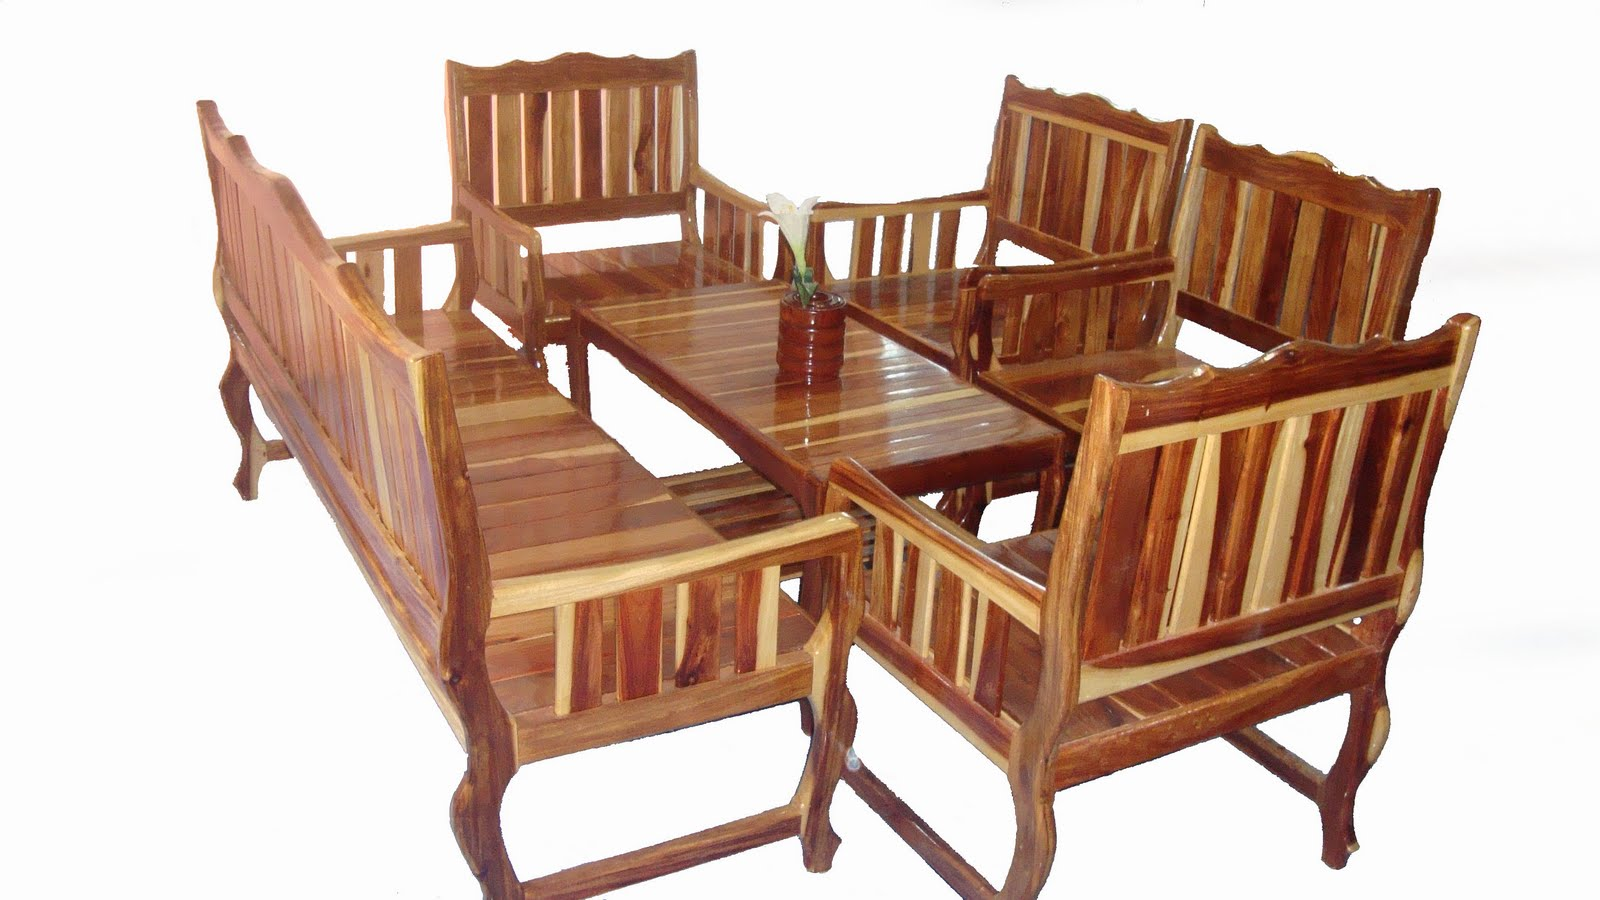 wooden furniture WWIBTKH